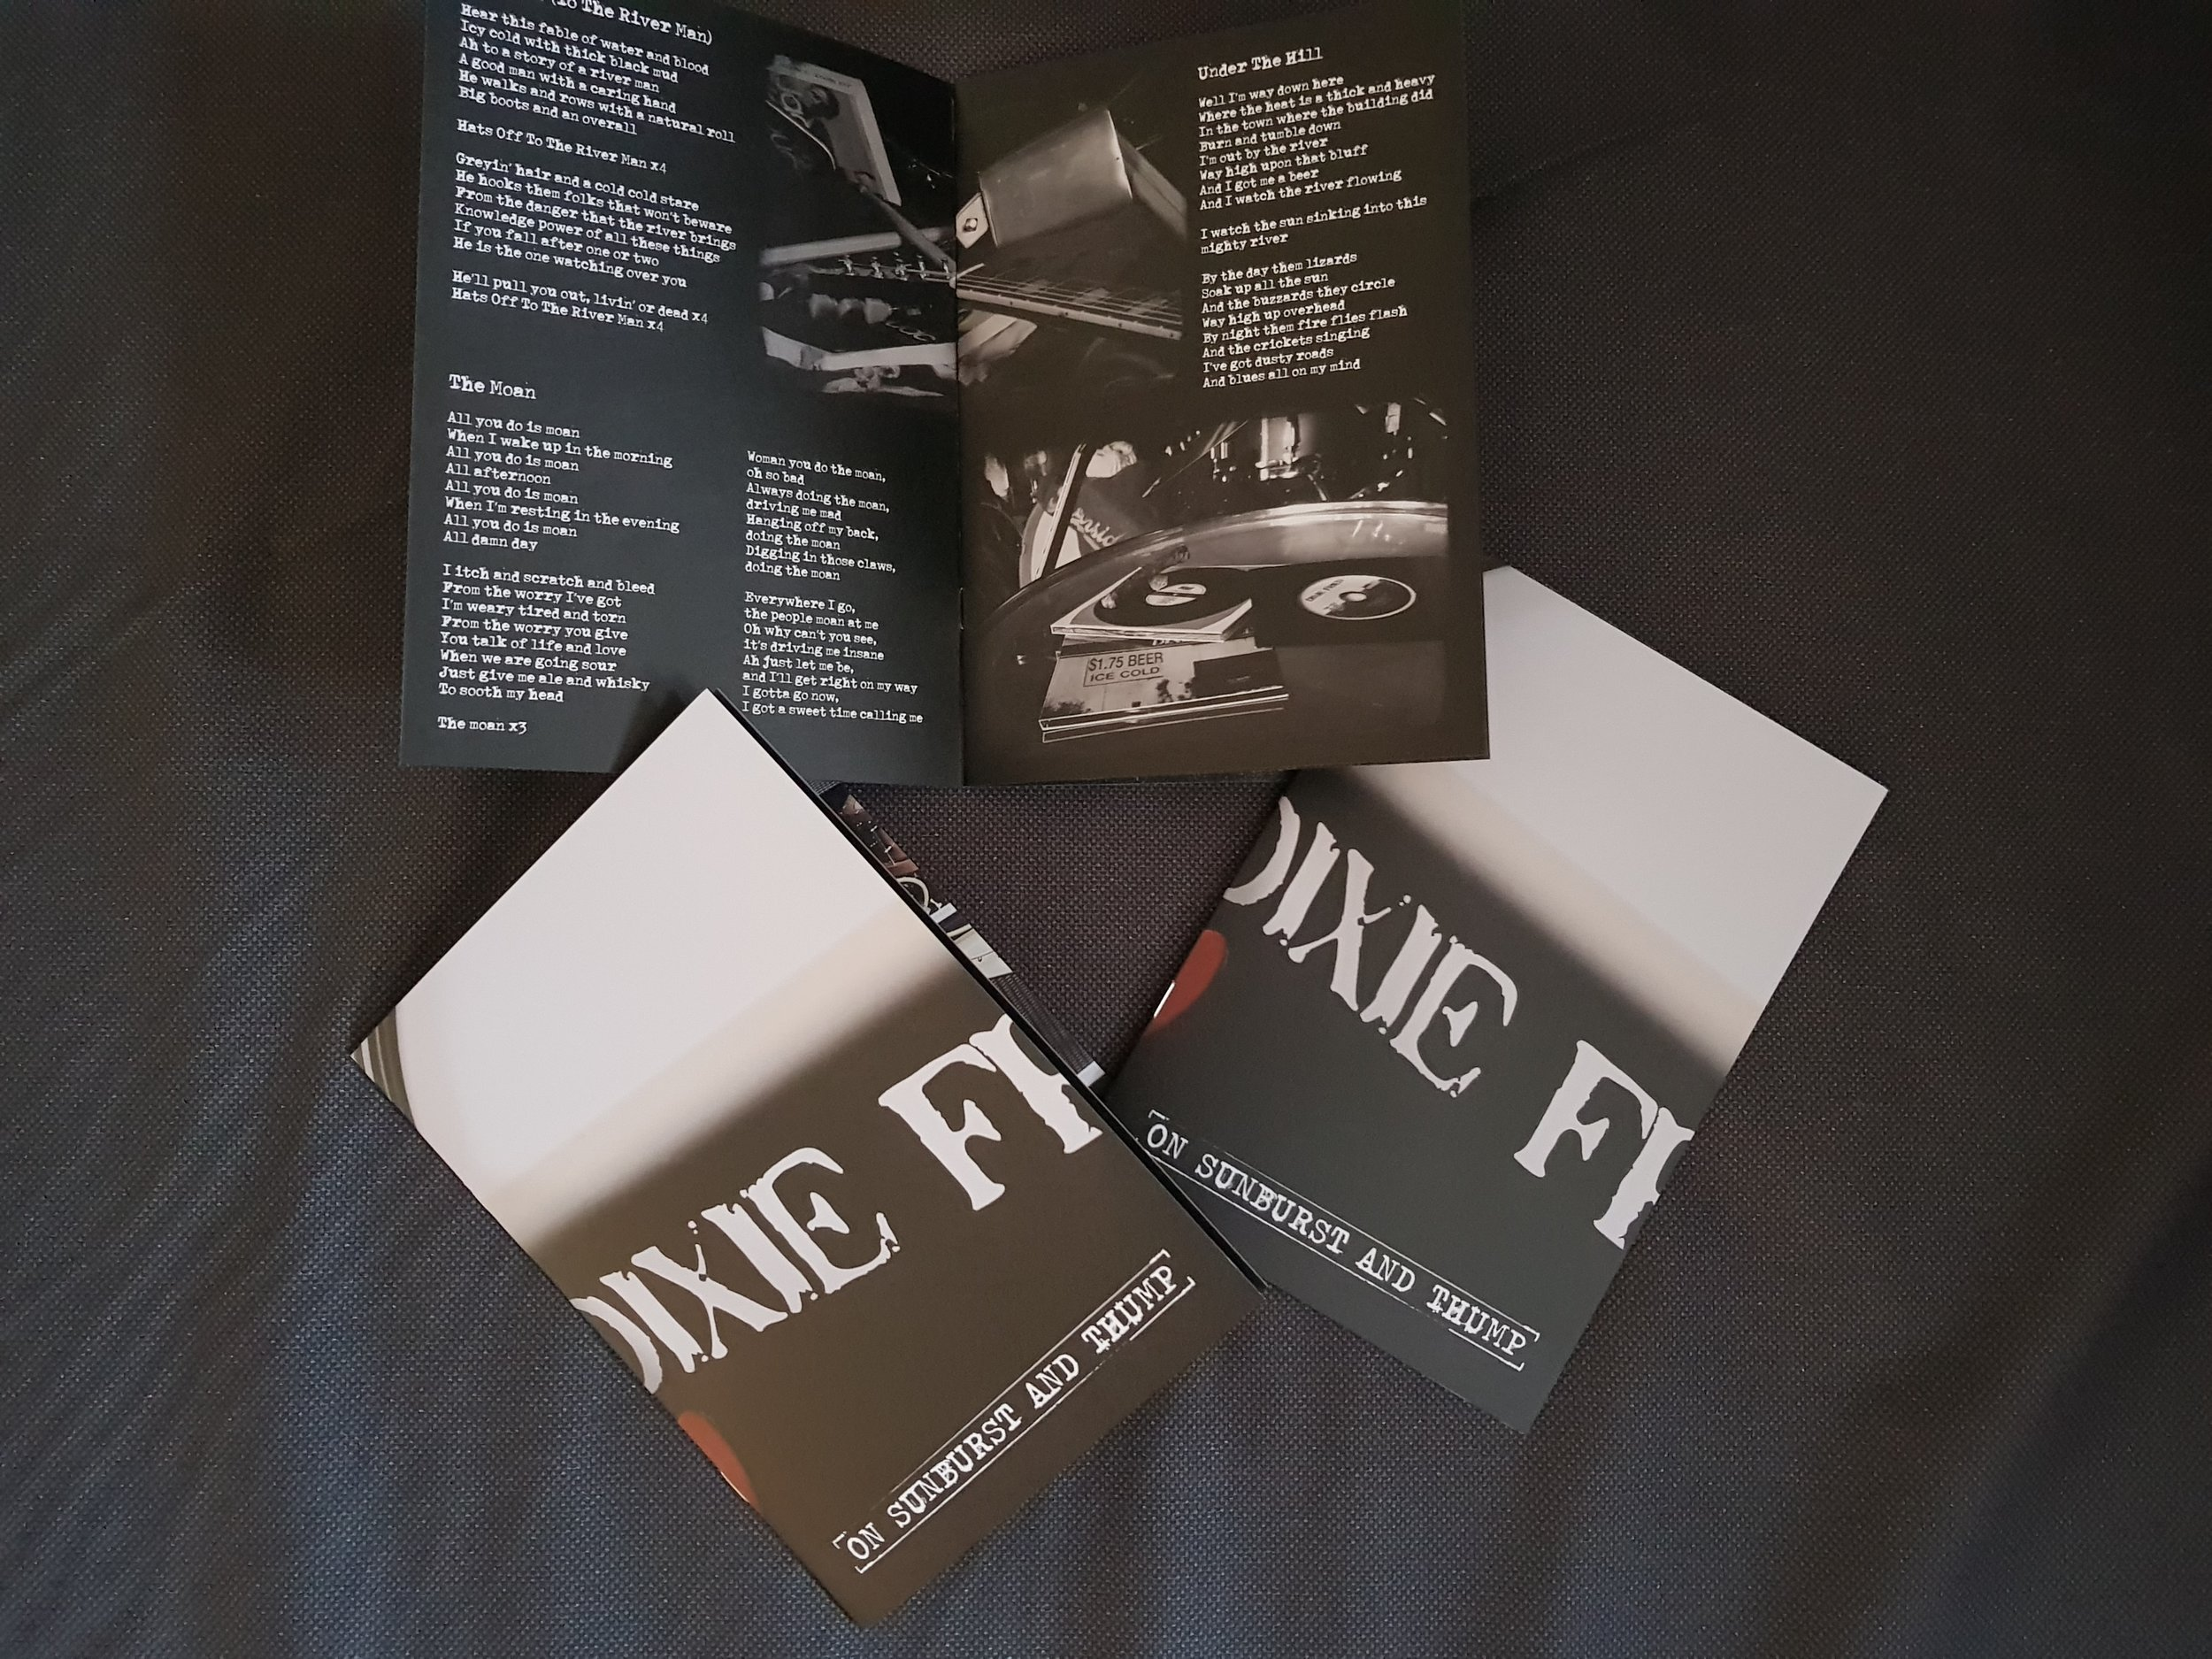 A5 12 page lyric booklet